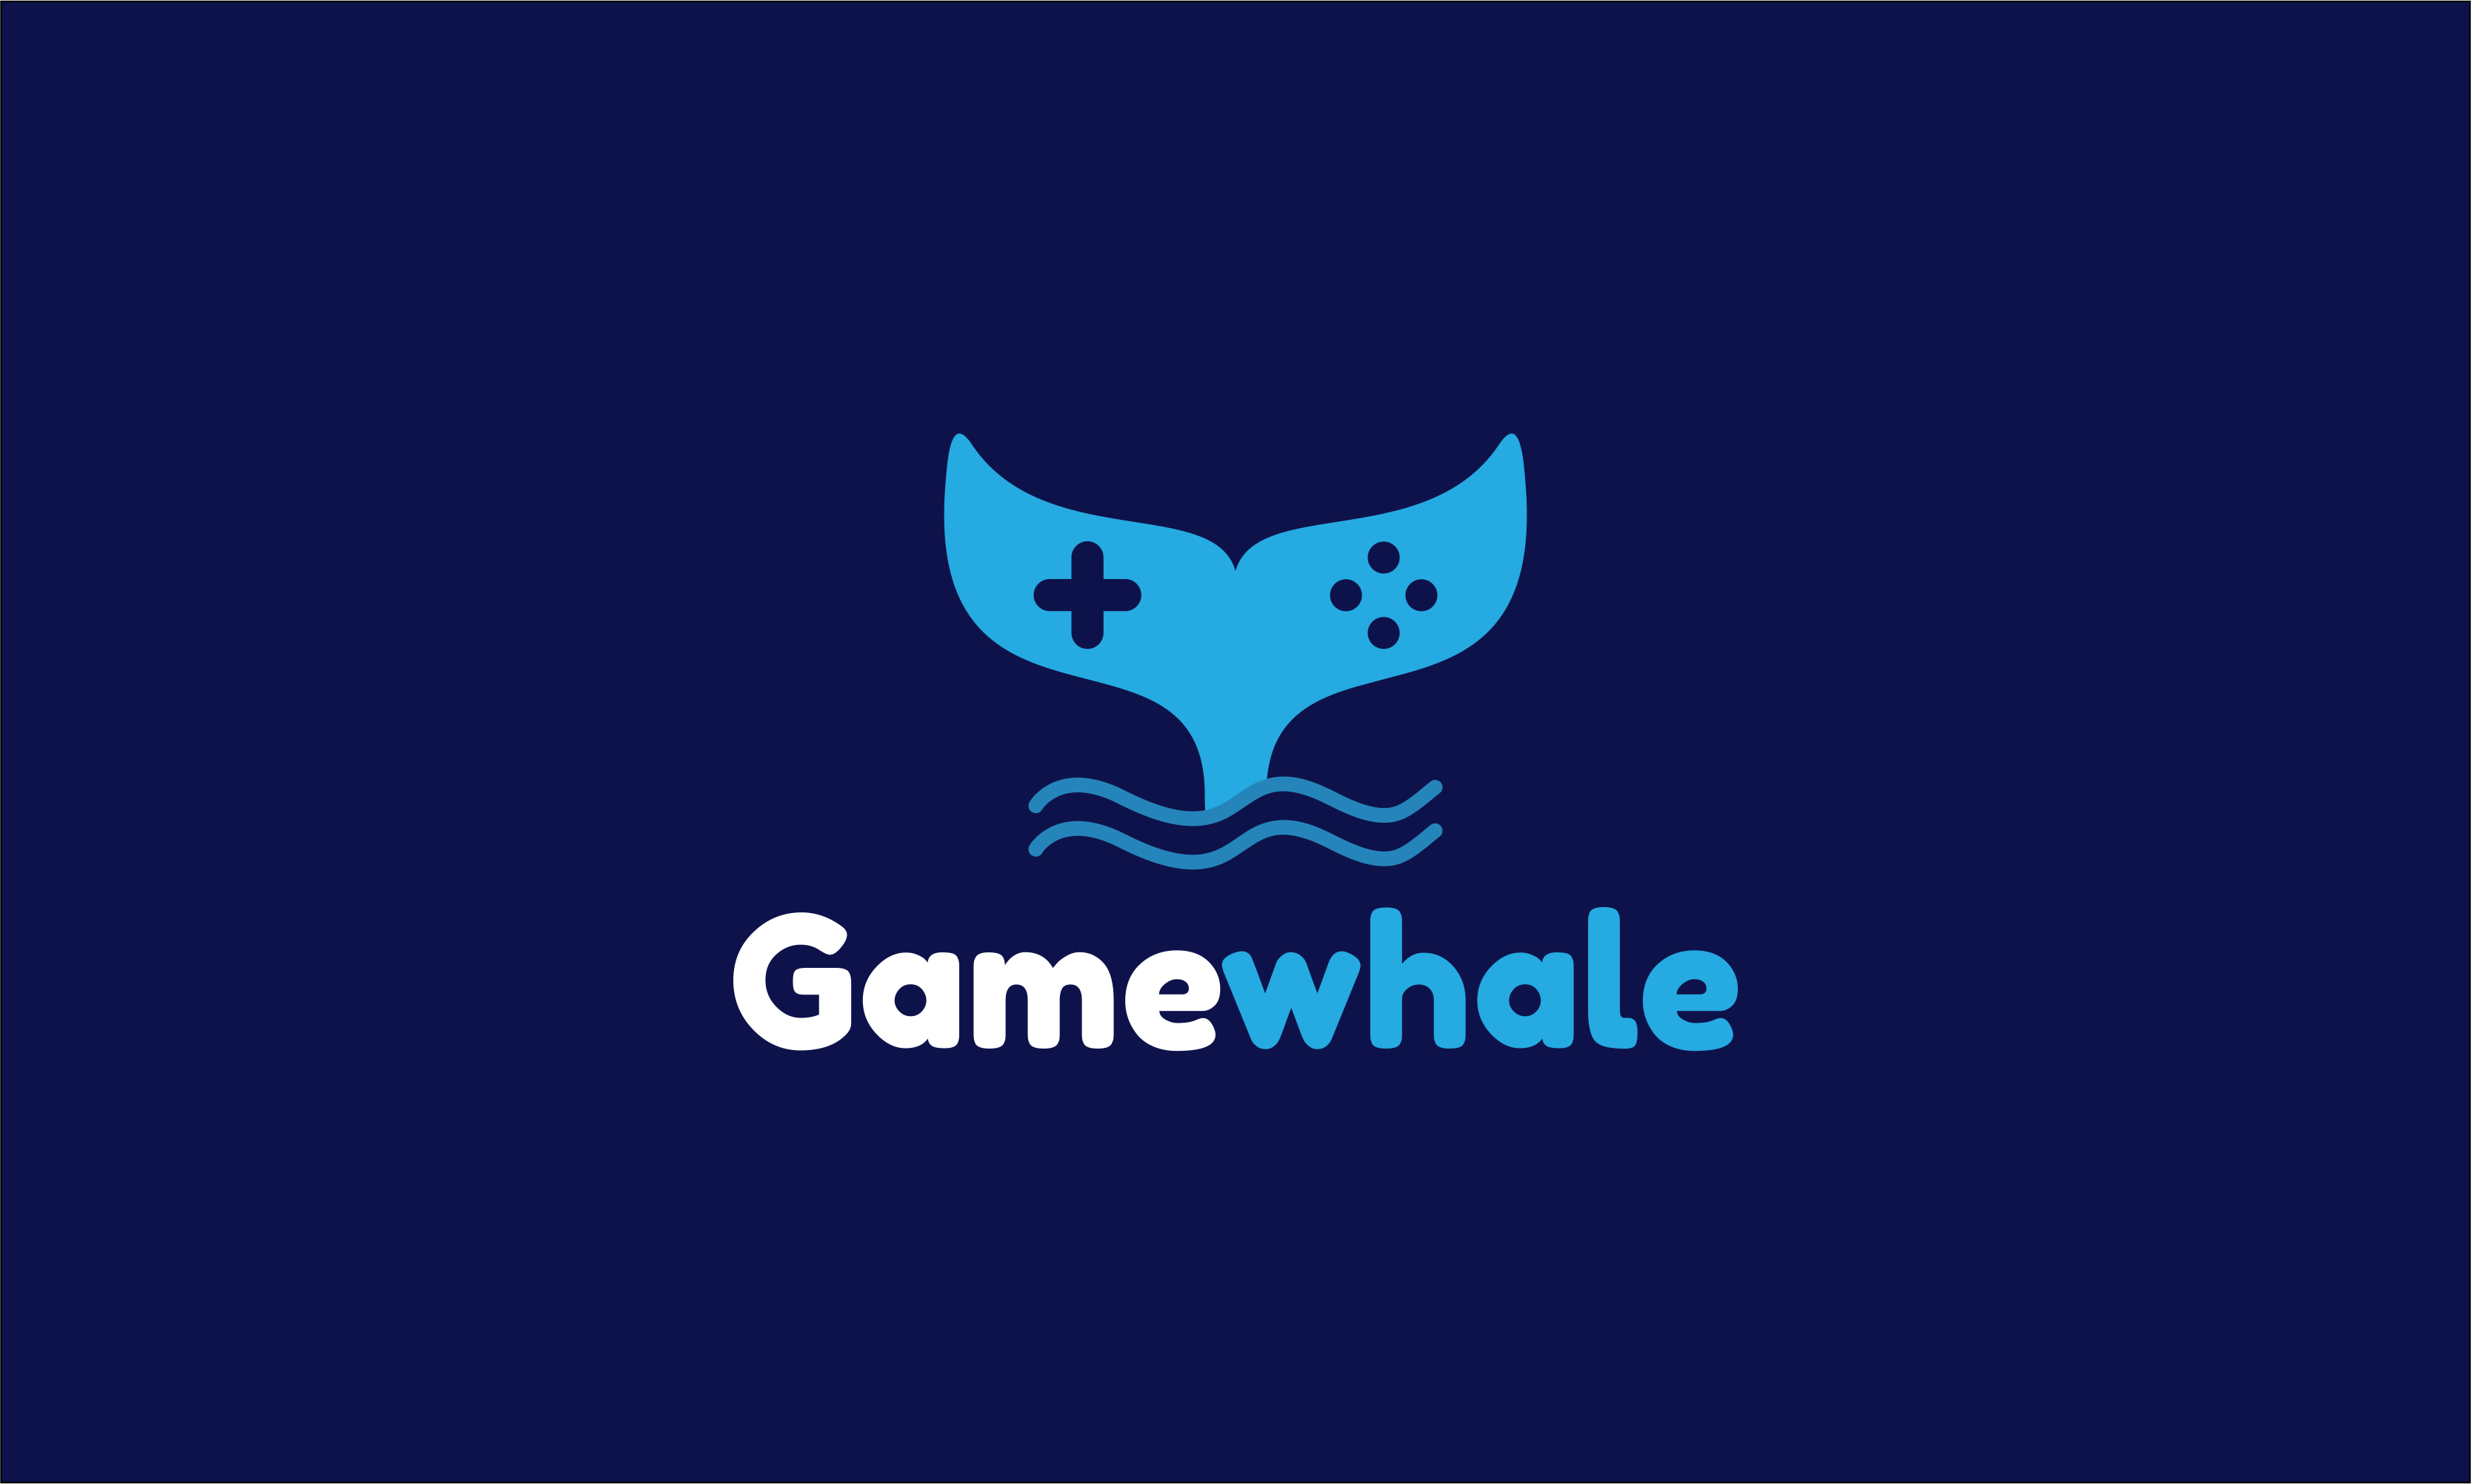 Gamewhale